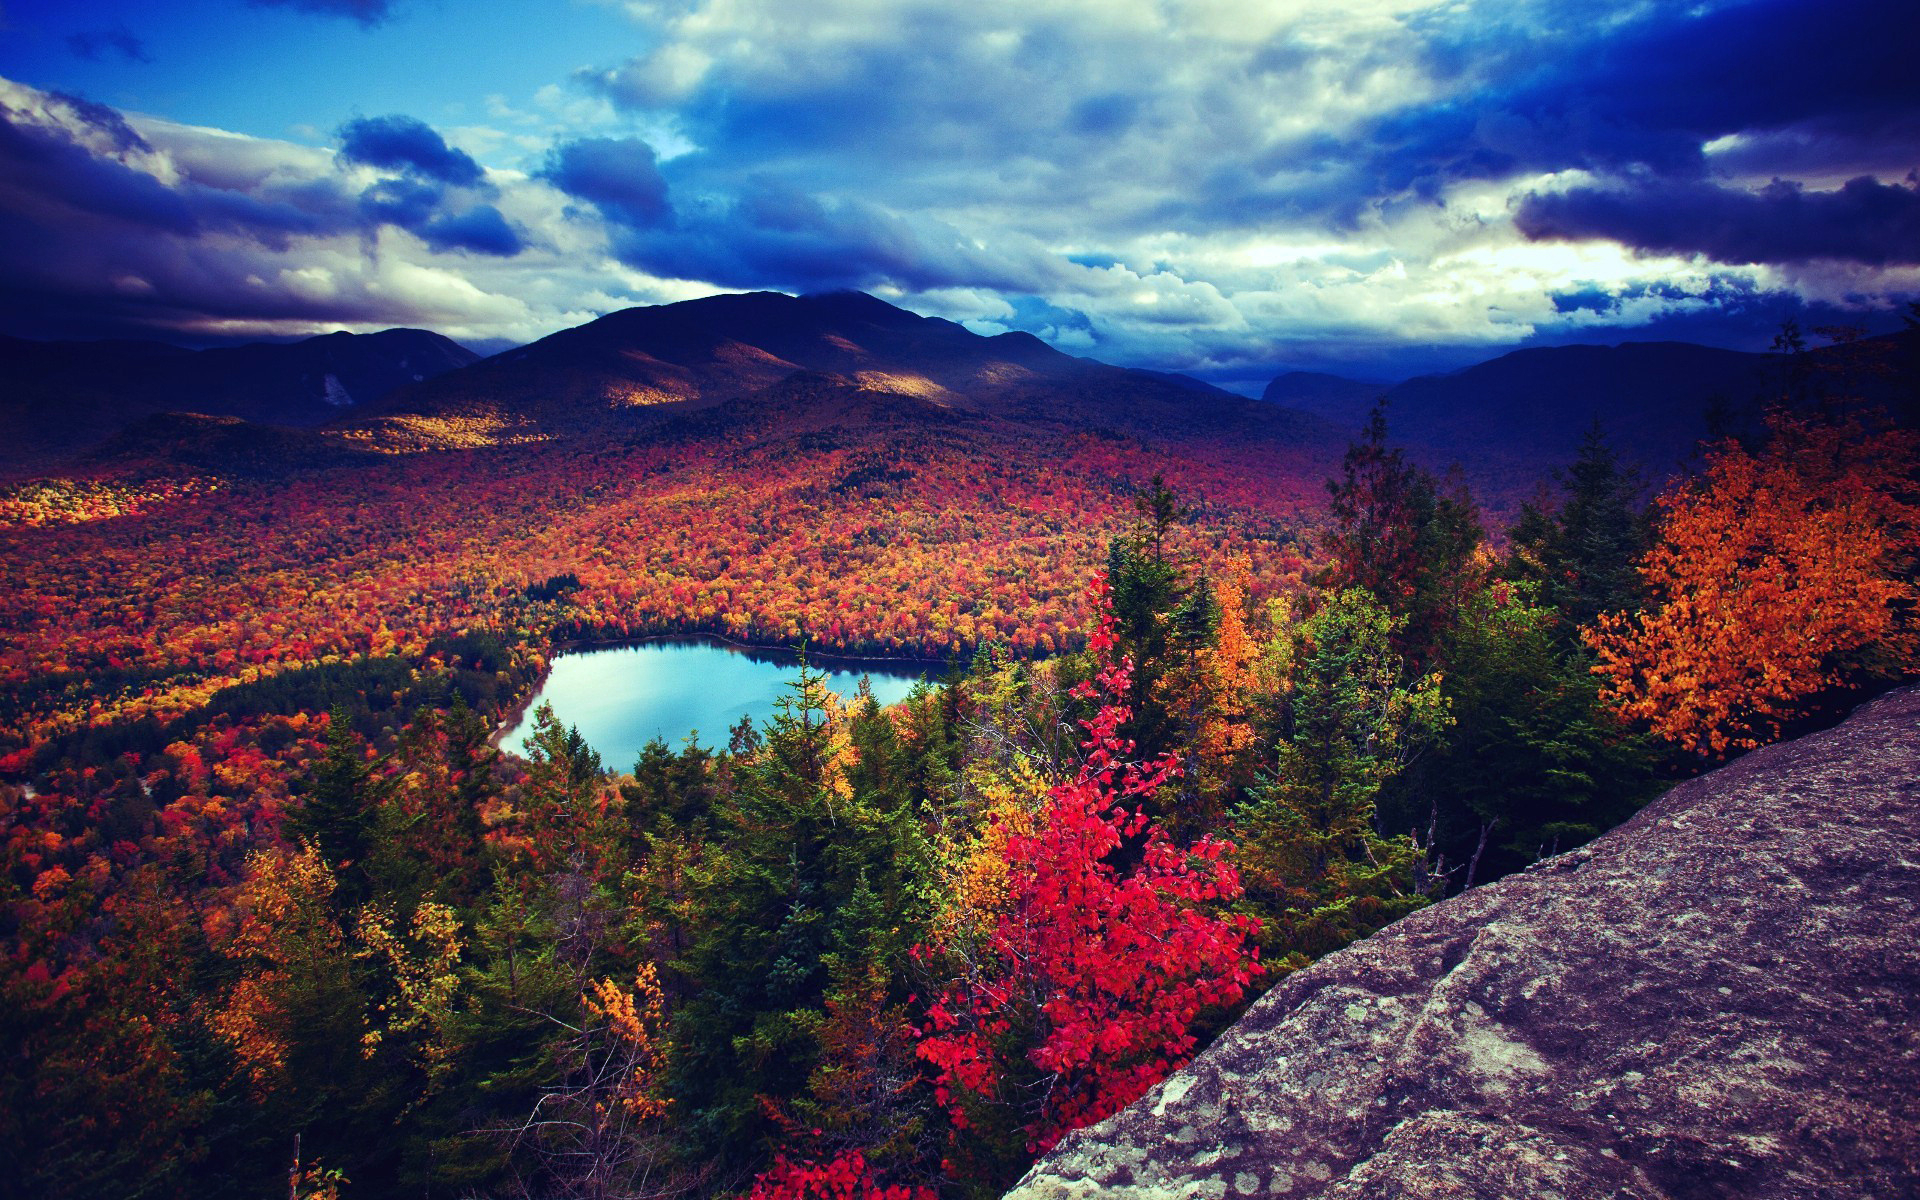 29706 download wallpaper Landscape, Trees, Autumn, Lakes screensavers and pictures for free